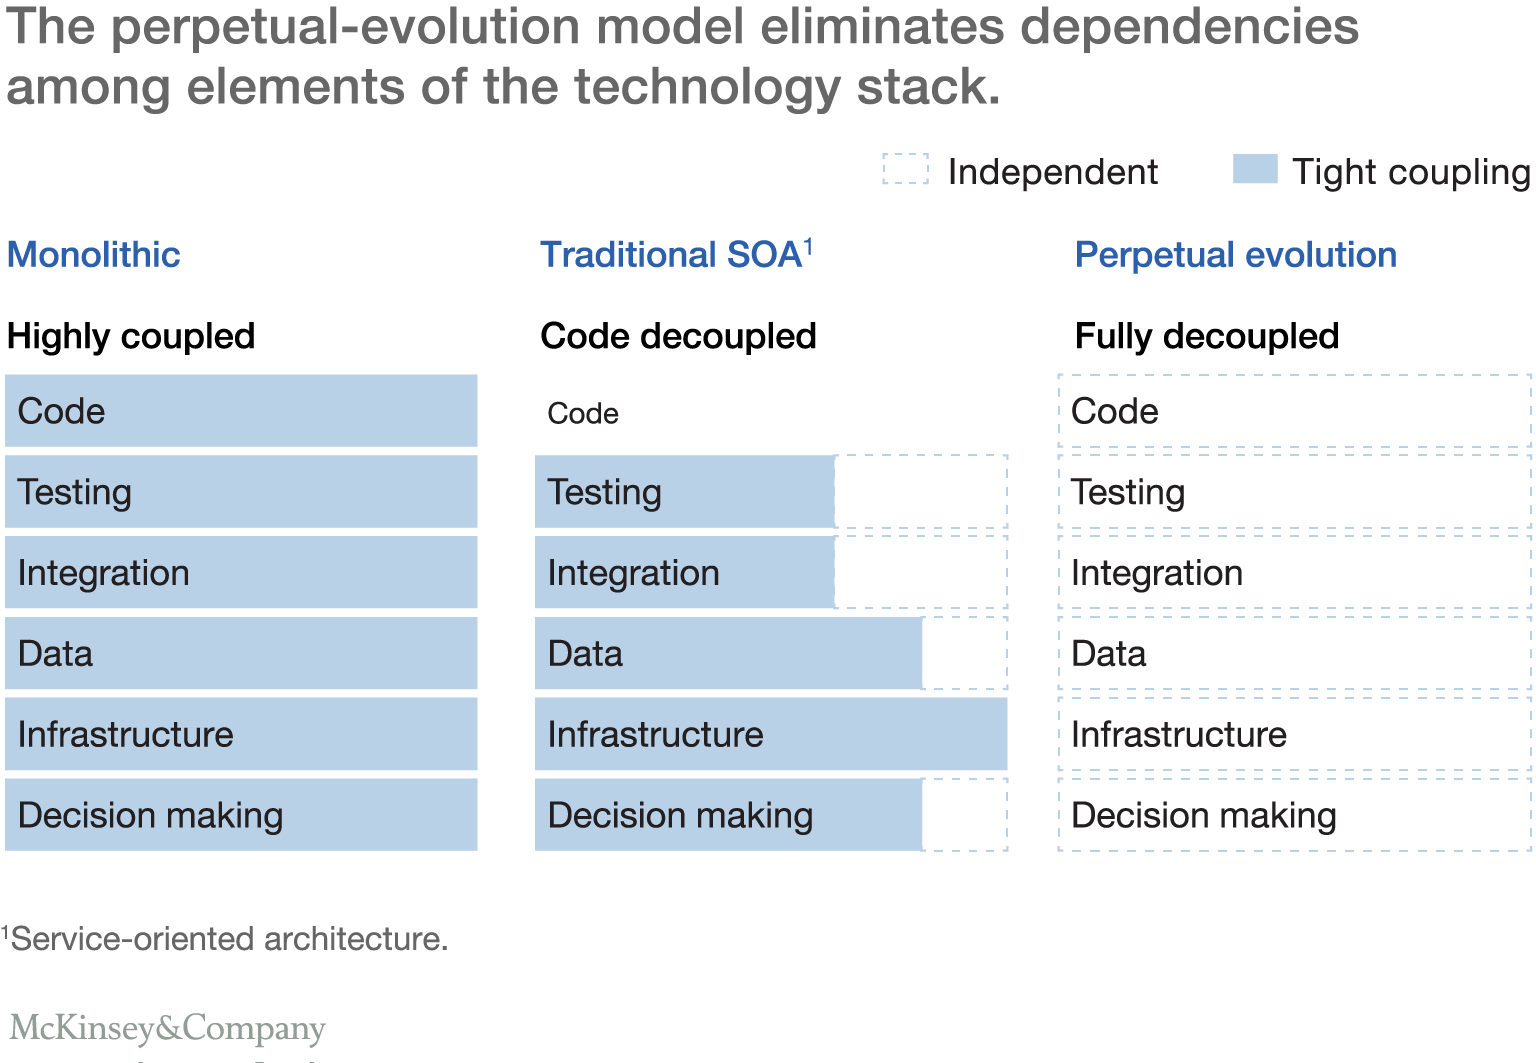 The perpetual-evolution model eliminates dependencies among elements of the technology stack.